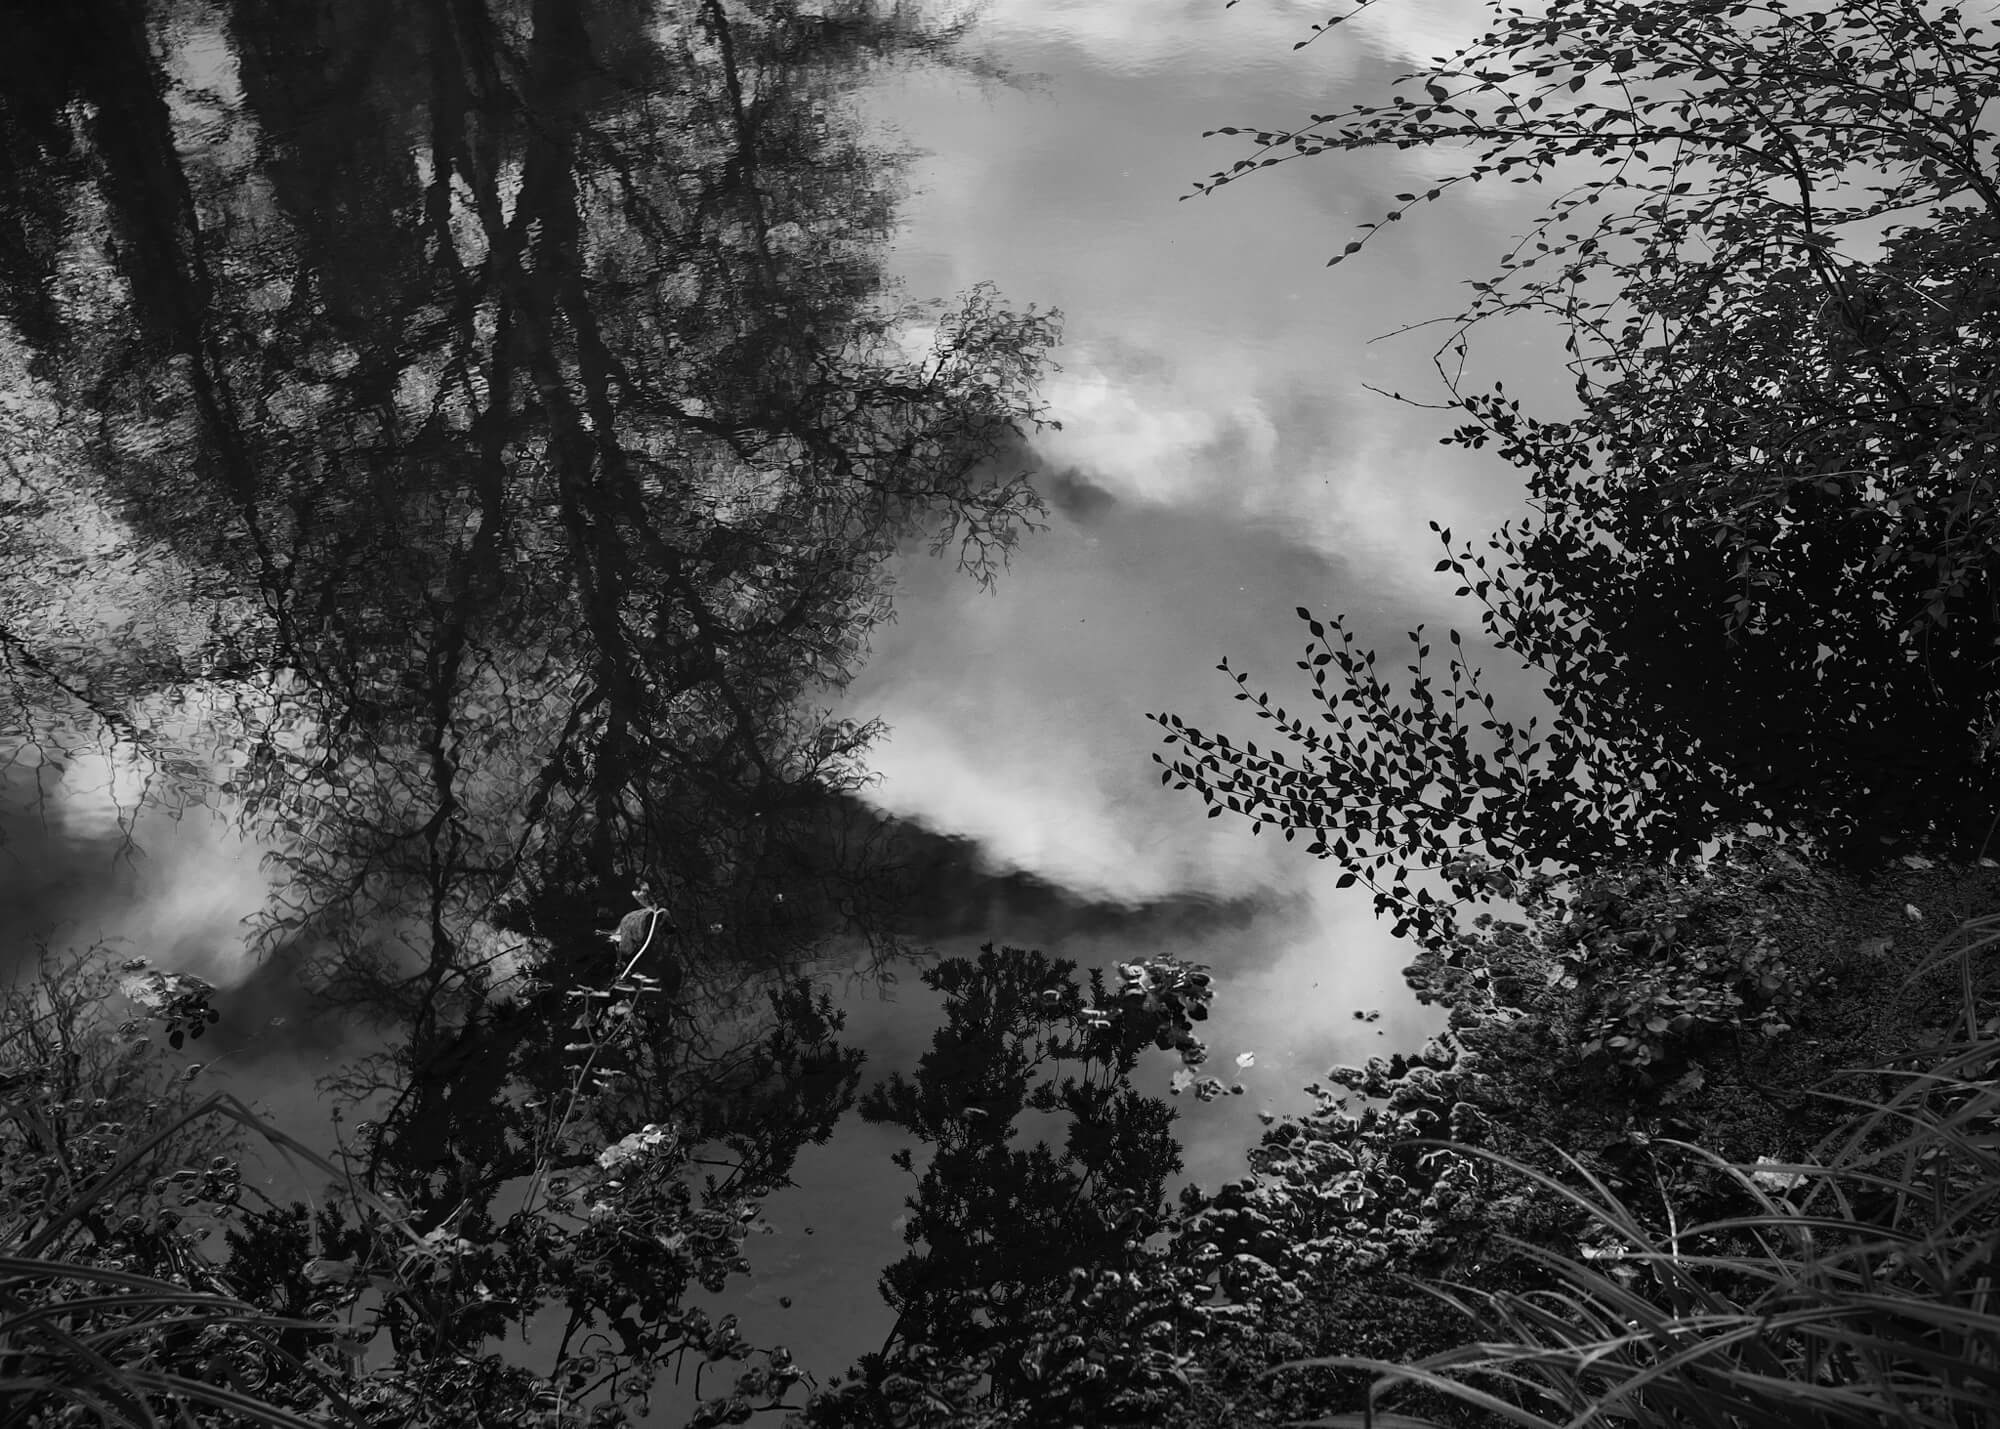 black and white image of sunlight on water with clouds in the background